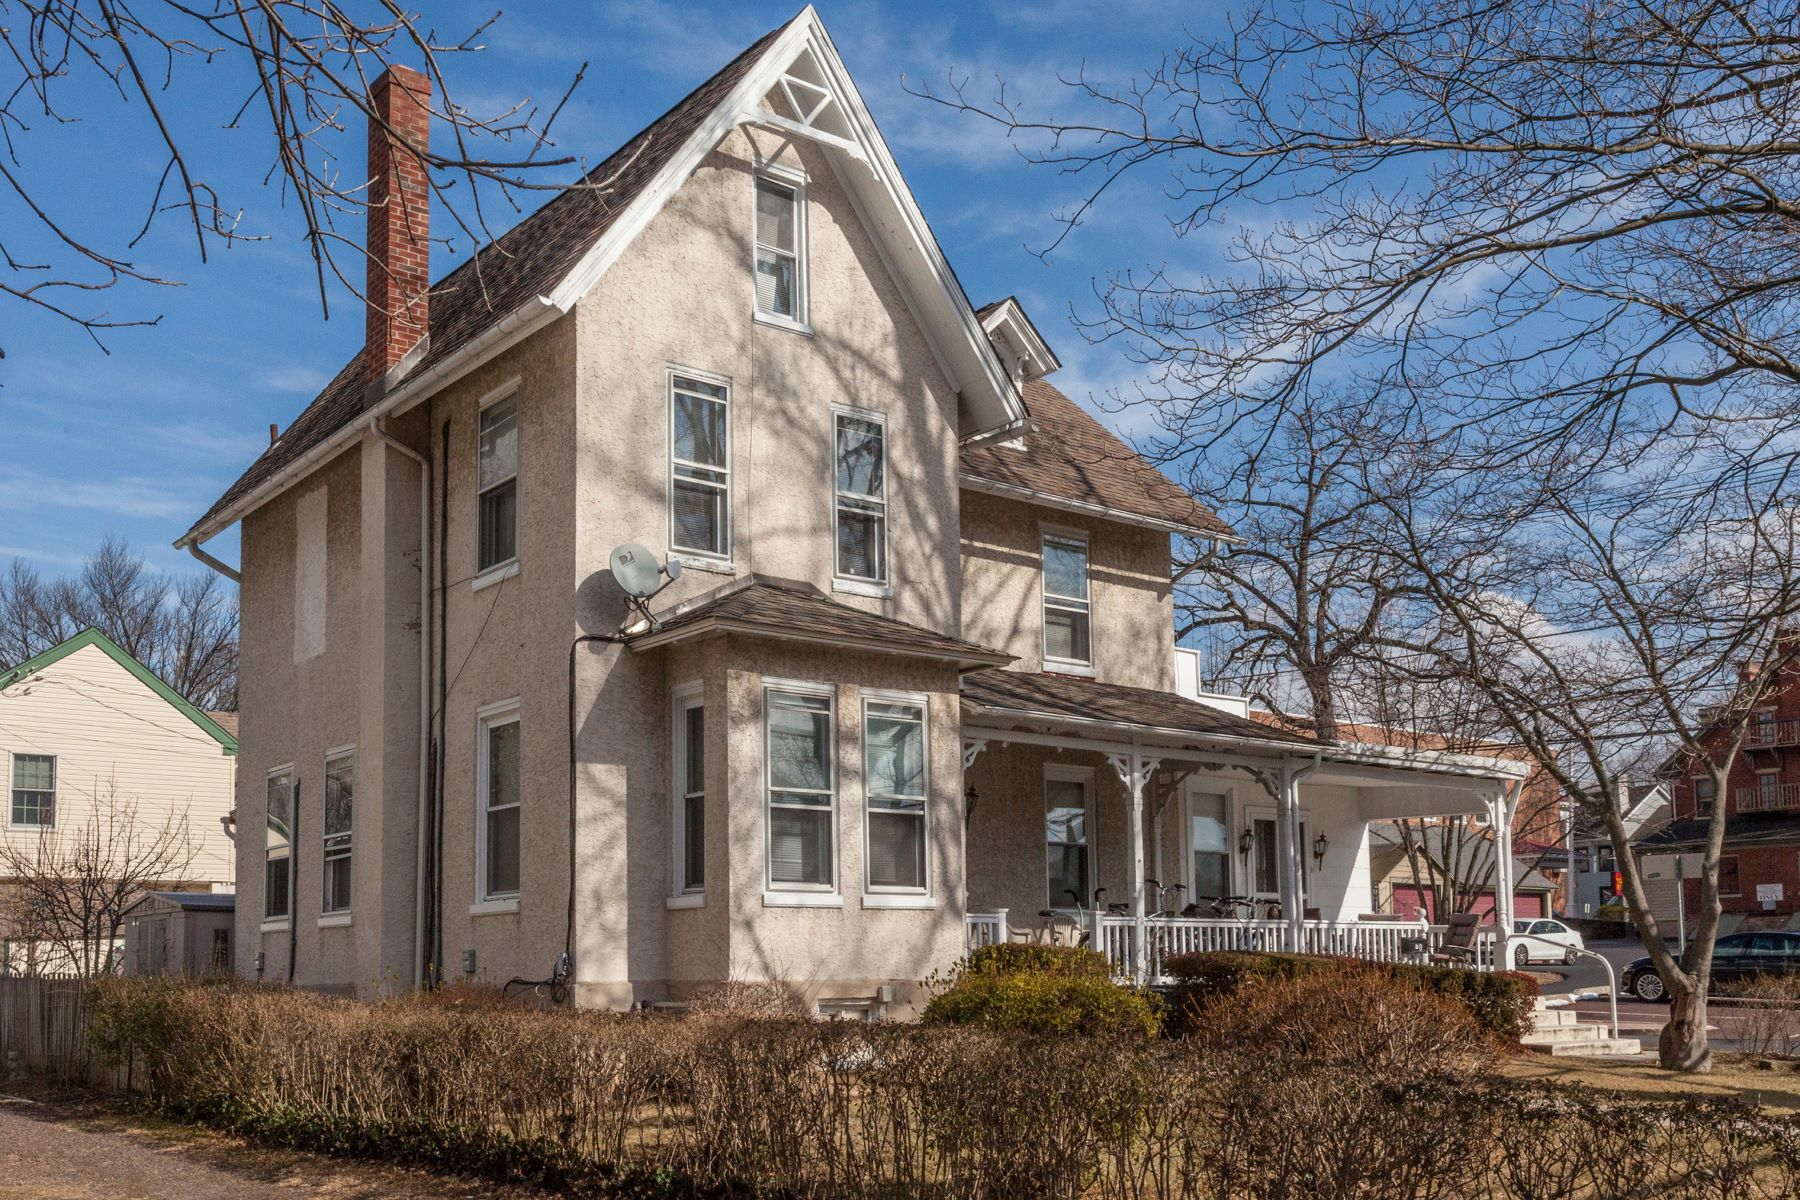 for Sale at 37 N Clinton St Doylestown, Pennsylvania, 18901 United States